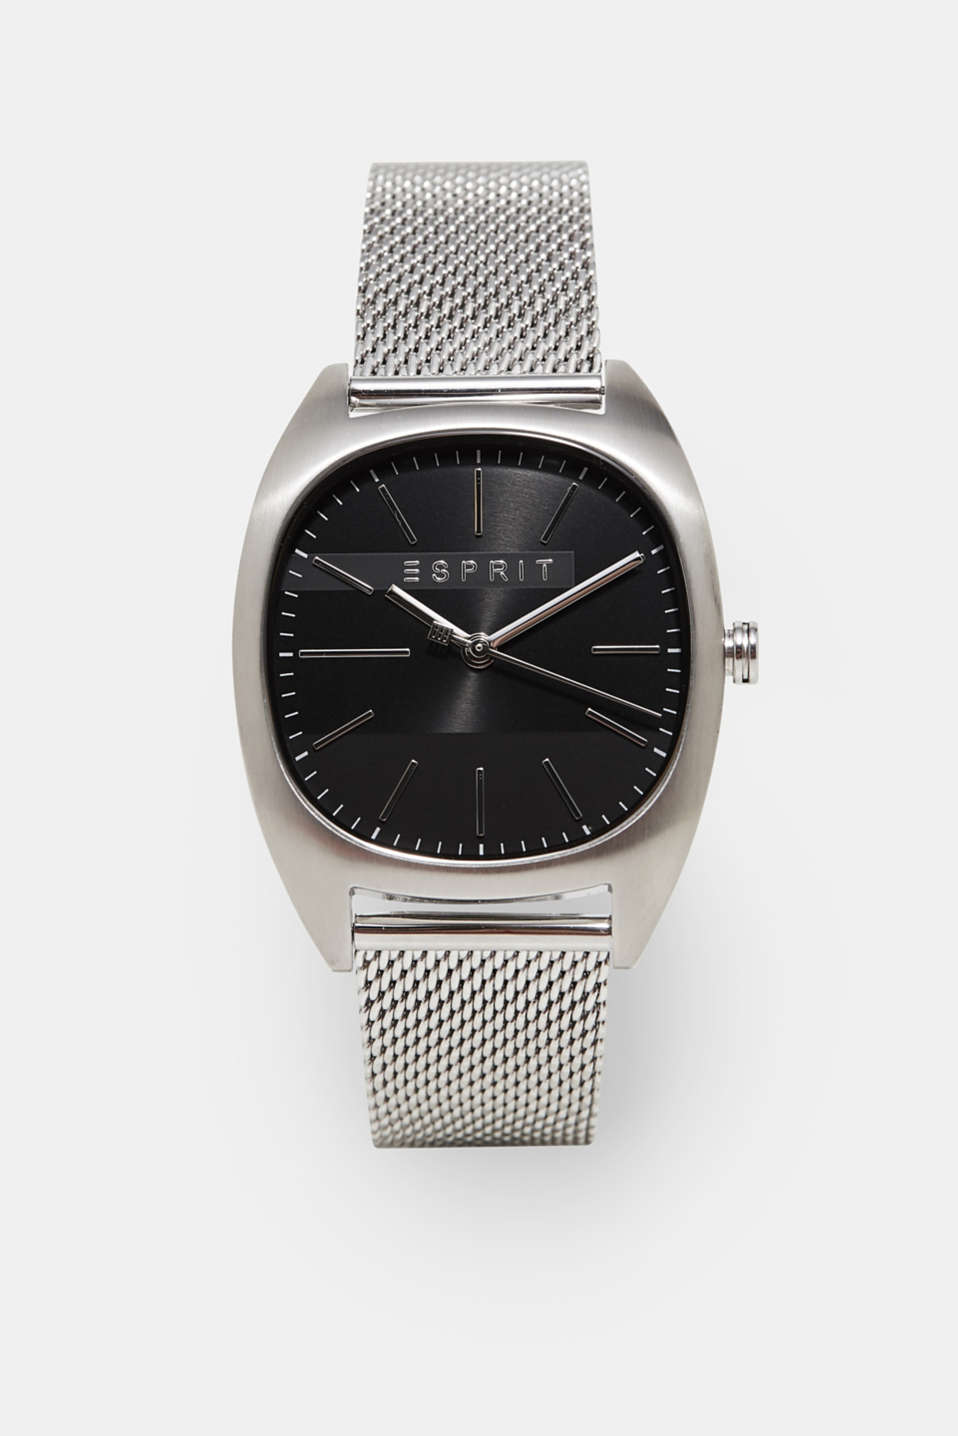 Esprit - Watch for men with a Milanese strap